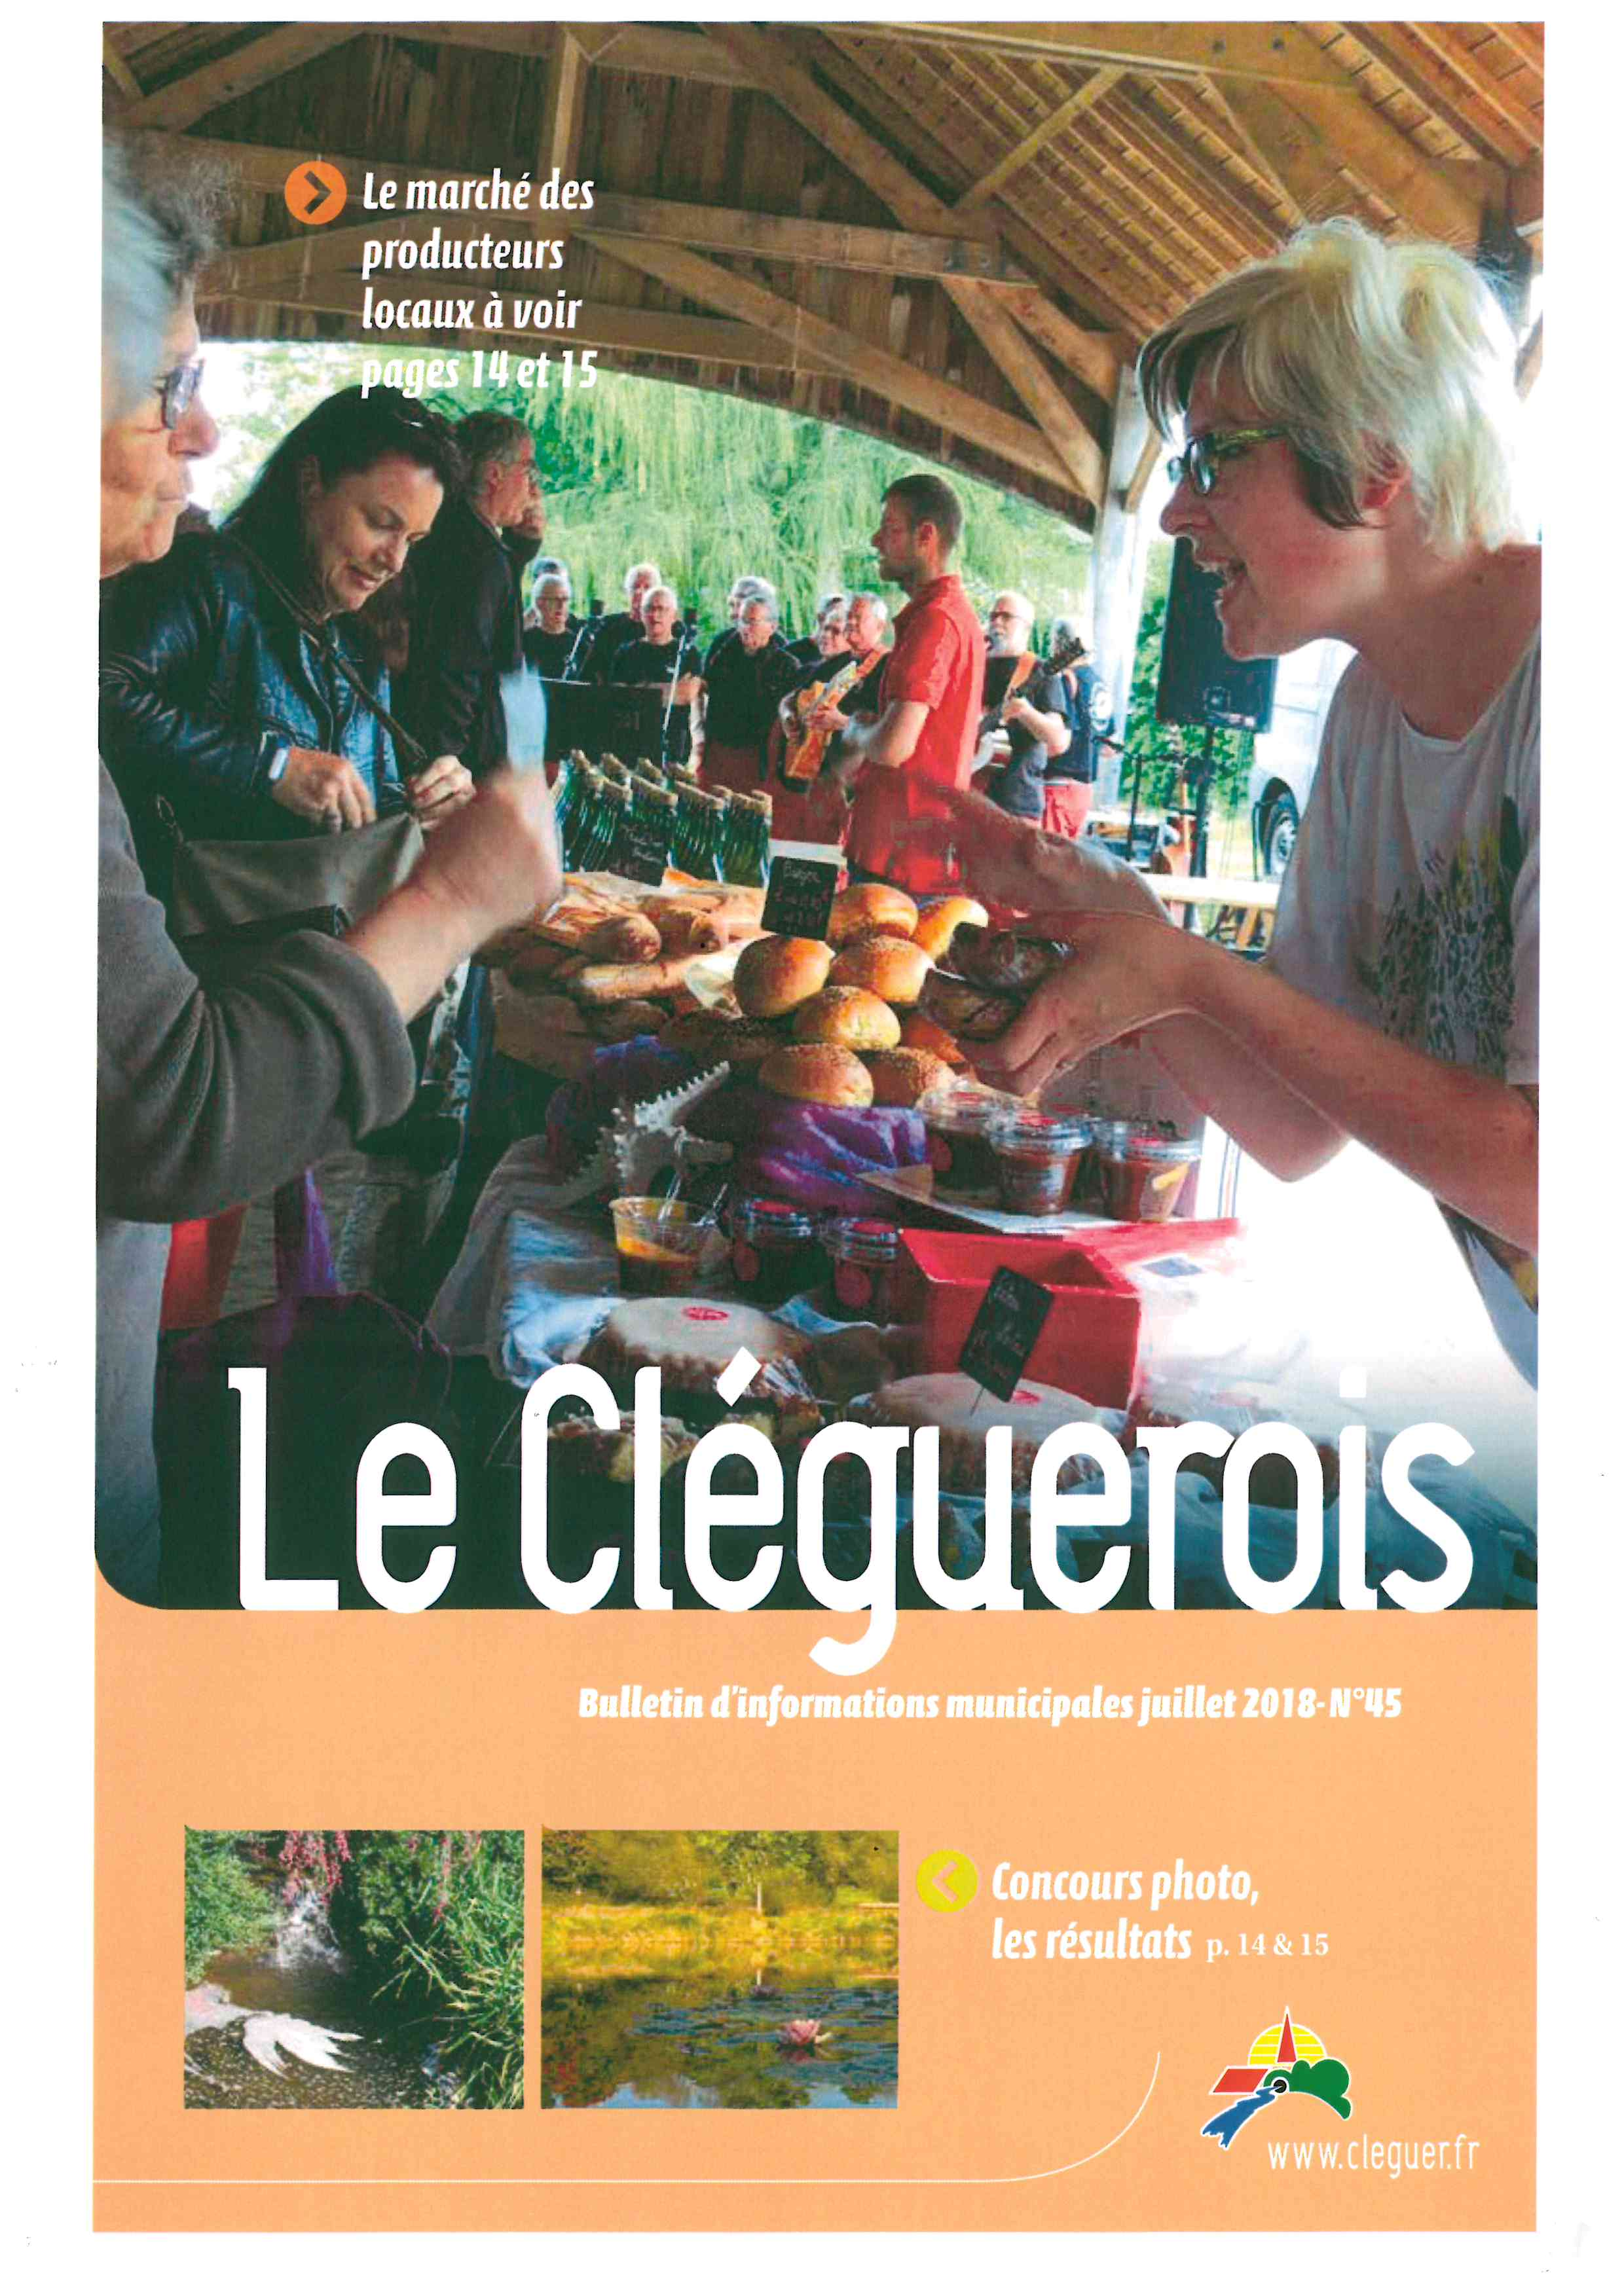 http://siteweb.caplorient.fr/fileadmin/user_upload/Cleguer/IMAGES/Commune/BM_JUILLET_18.jpg